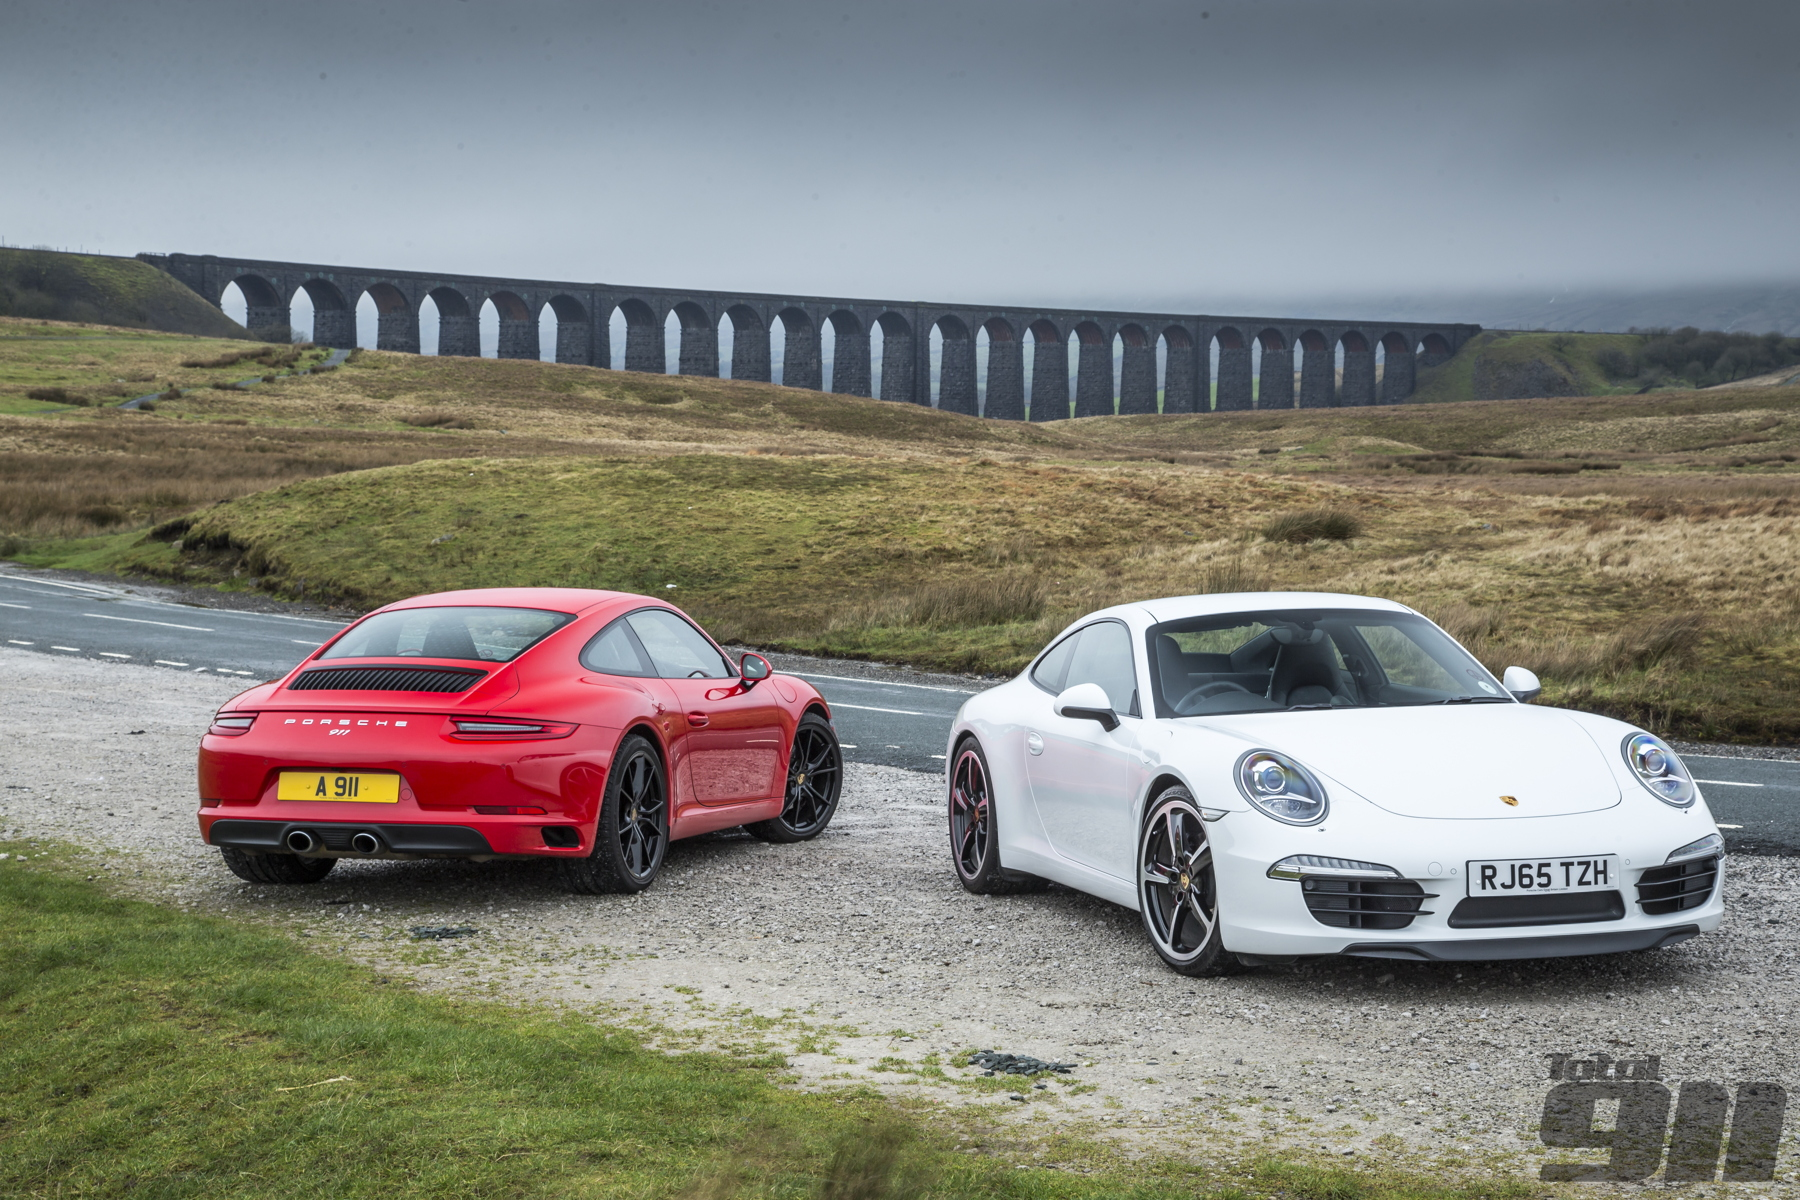 Another Porsche 991 Gen2 (this time in standard Carrera spec) goes up against its immediate forebear.